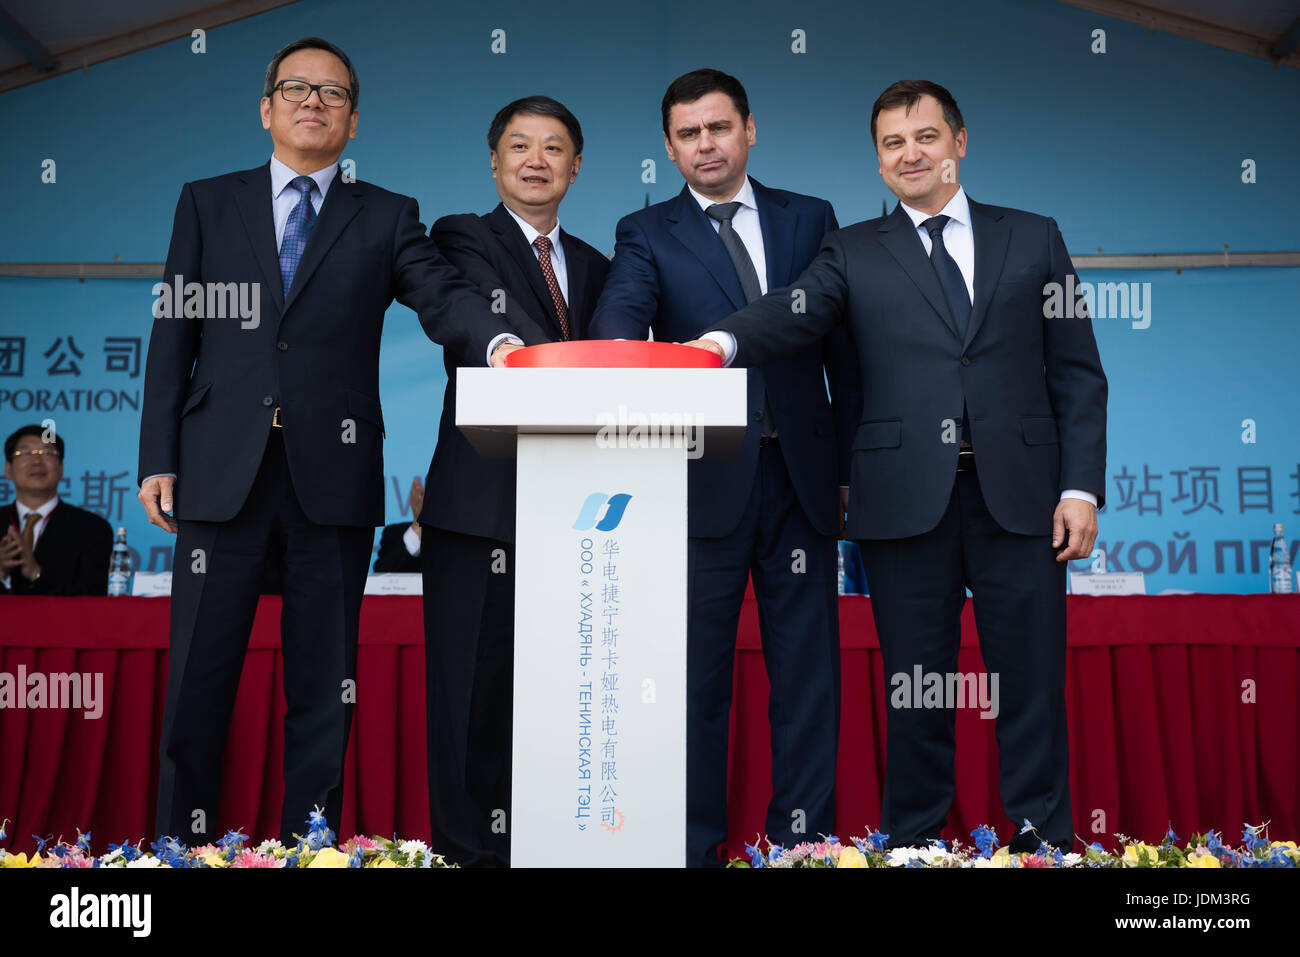 (170621) -- YAROSLAVL (RUSSIA), June 21, 2017 (Xinhua) -- (L to R) Minister counsellor of the economic and commercial - Stock Image